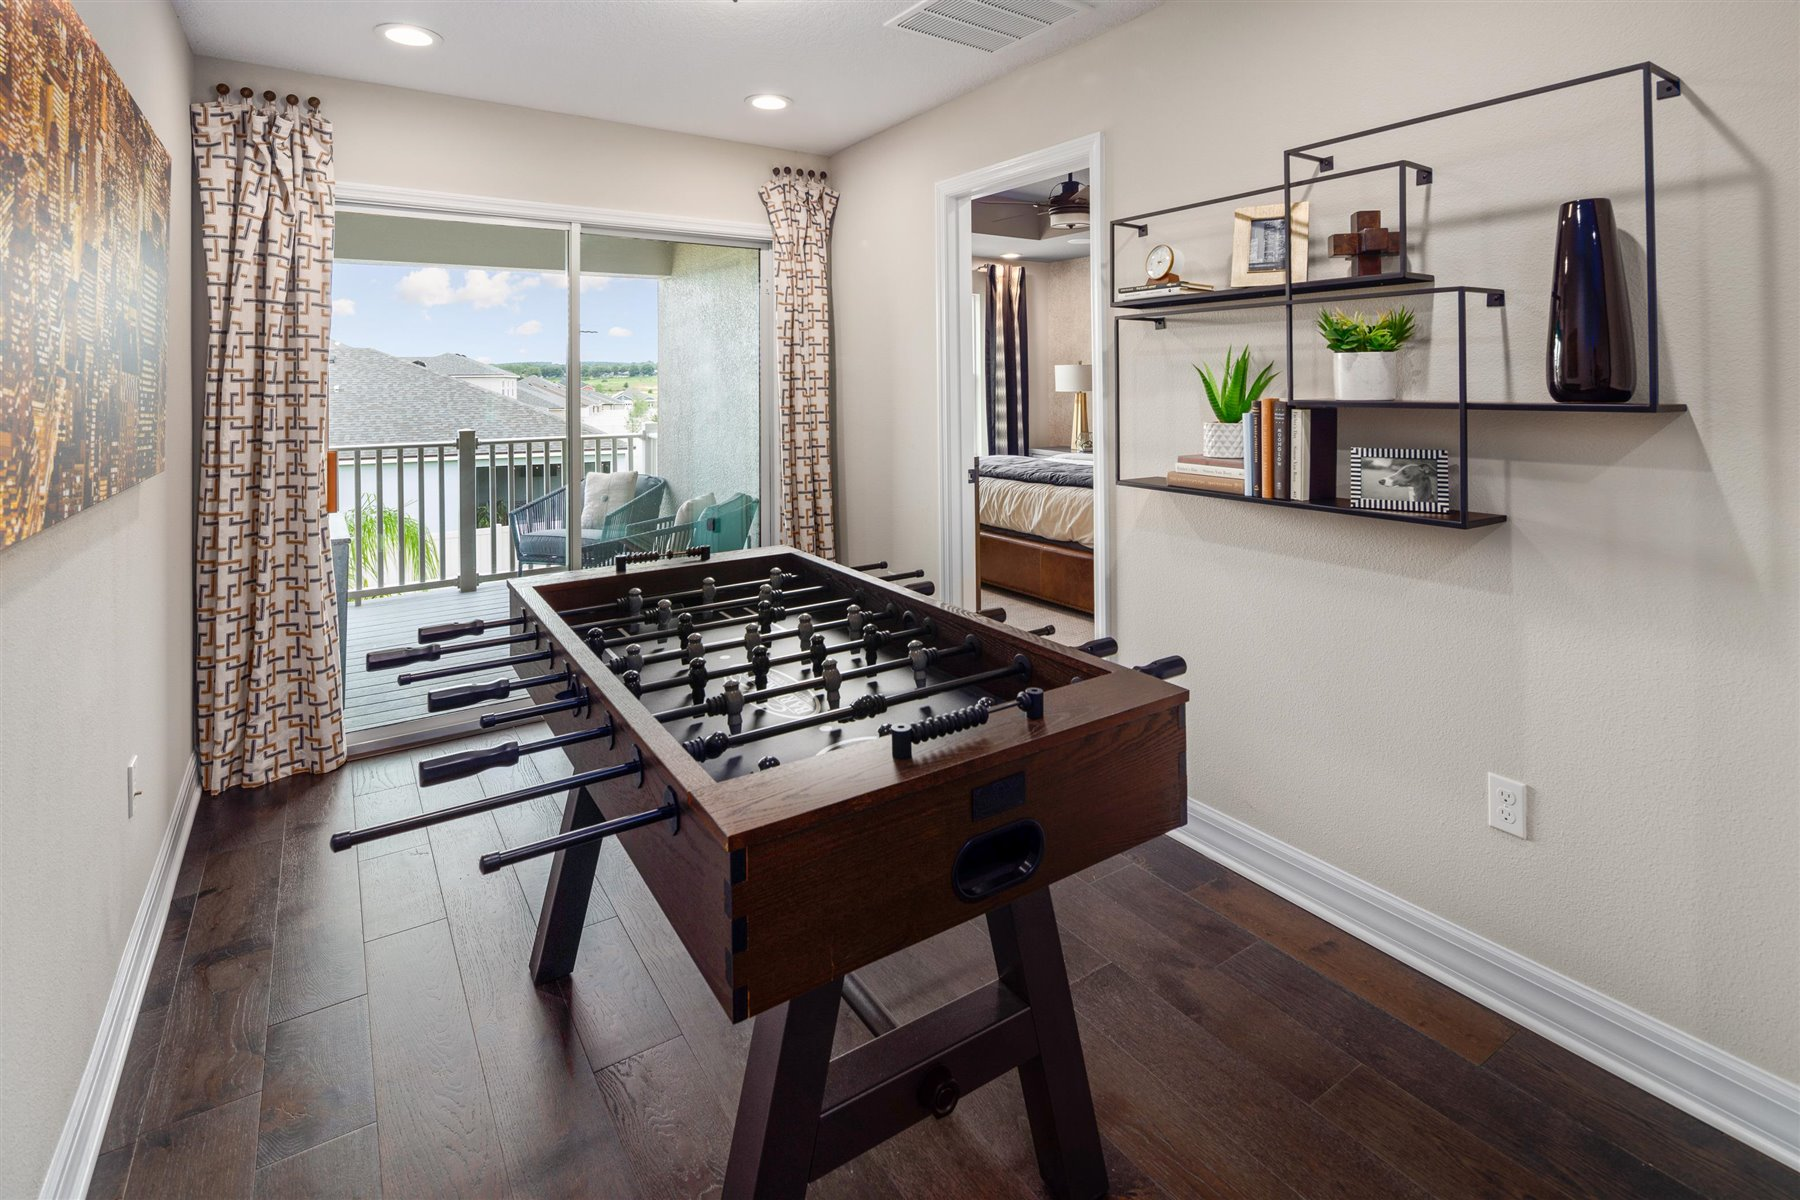 Francesca III Plan Recreation Room at Randal Walk in Orlando Florida by Mattamy Homes